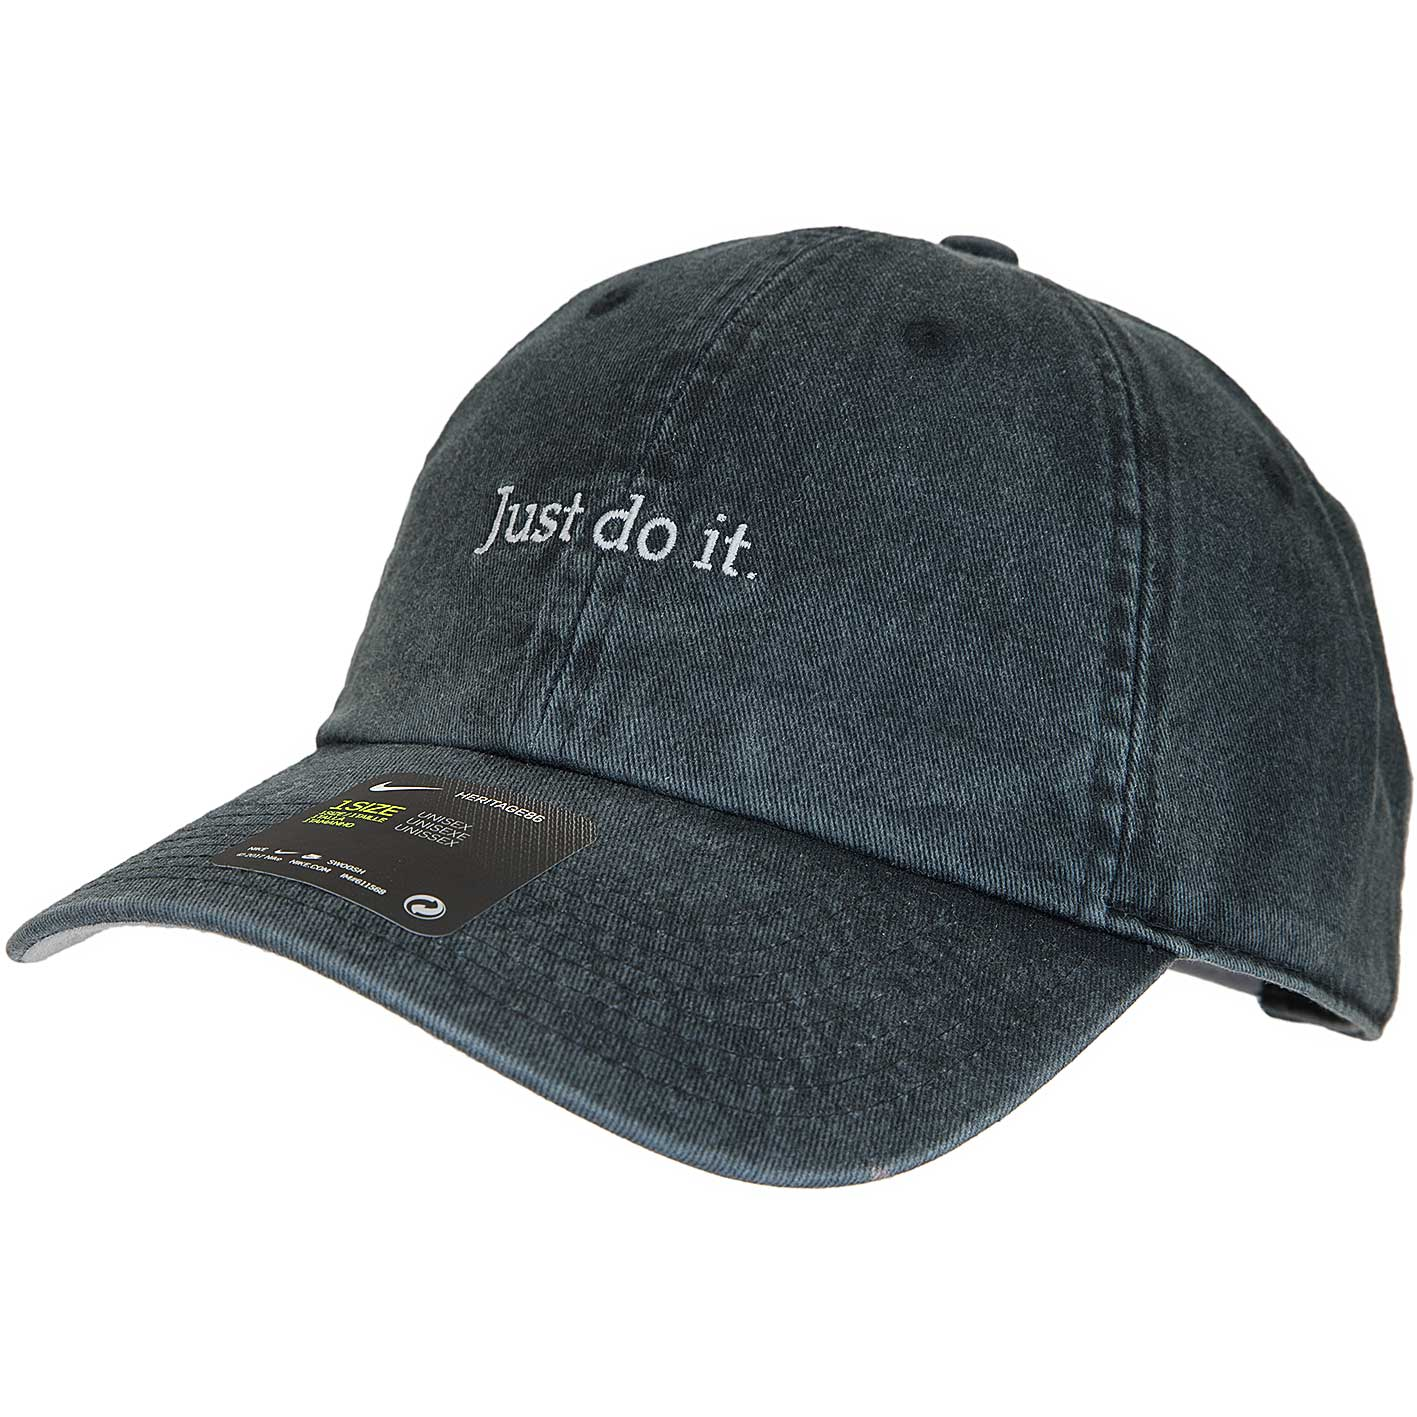 31f80d62b06 ... official store nike snapback cap h86 just do it schwarz weiß 92177 cc553